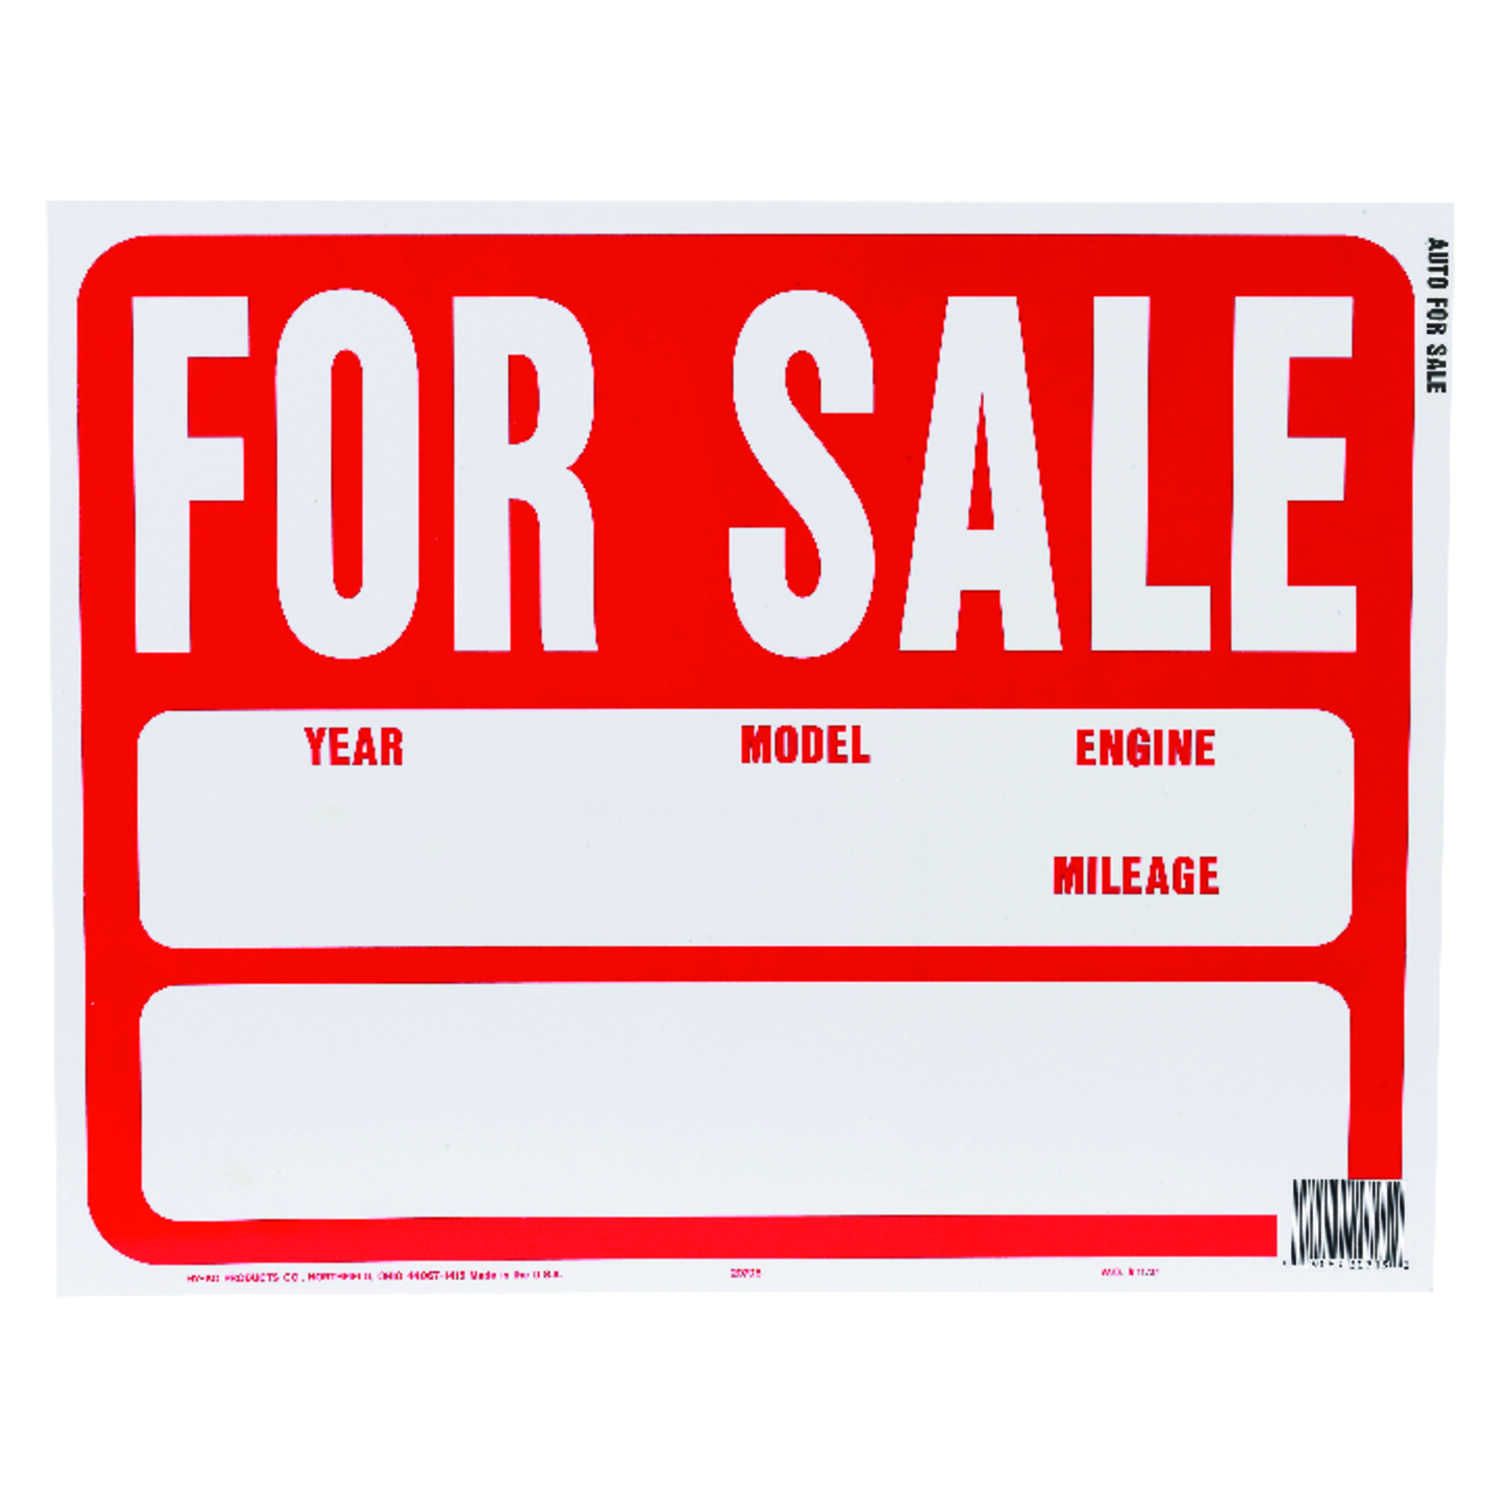 Hy-Ko  English  For Sale (Auto)  19 in. W x 15 in. H Plastic  Sign